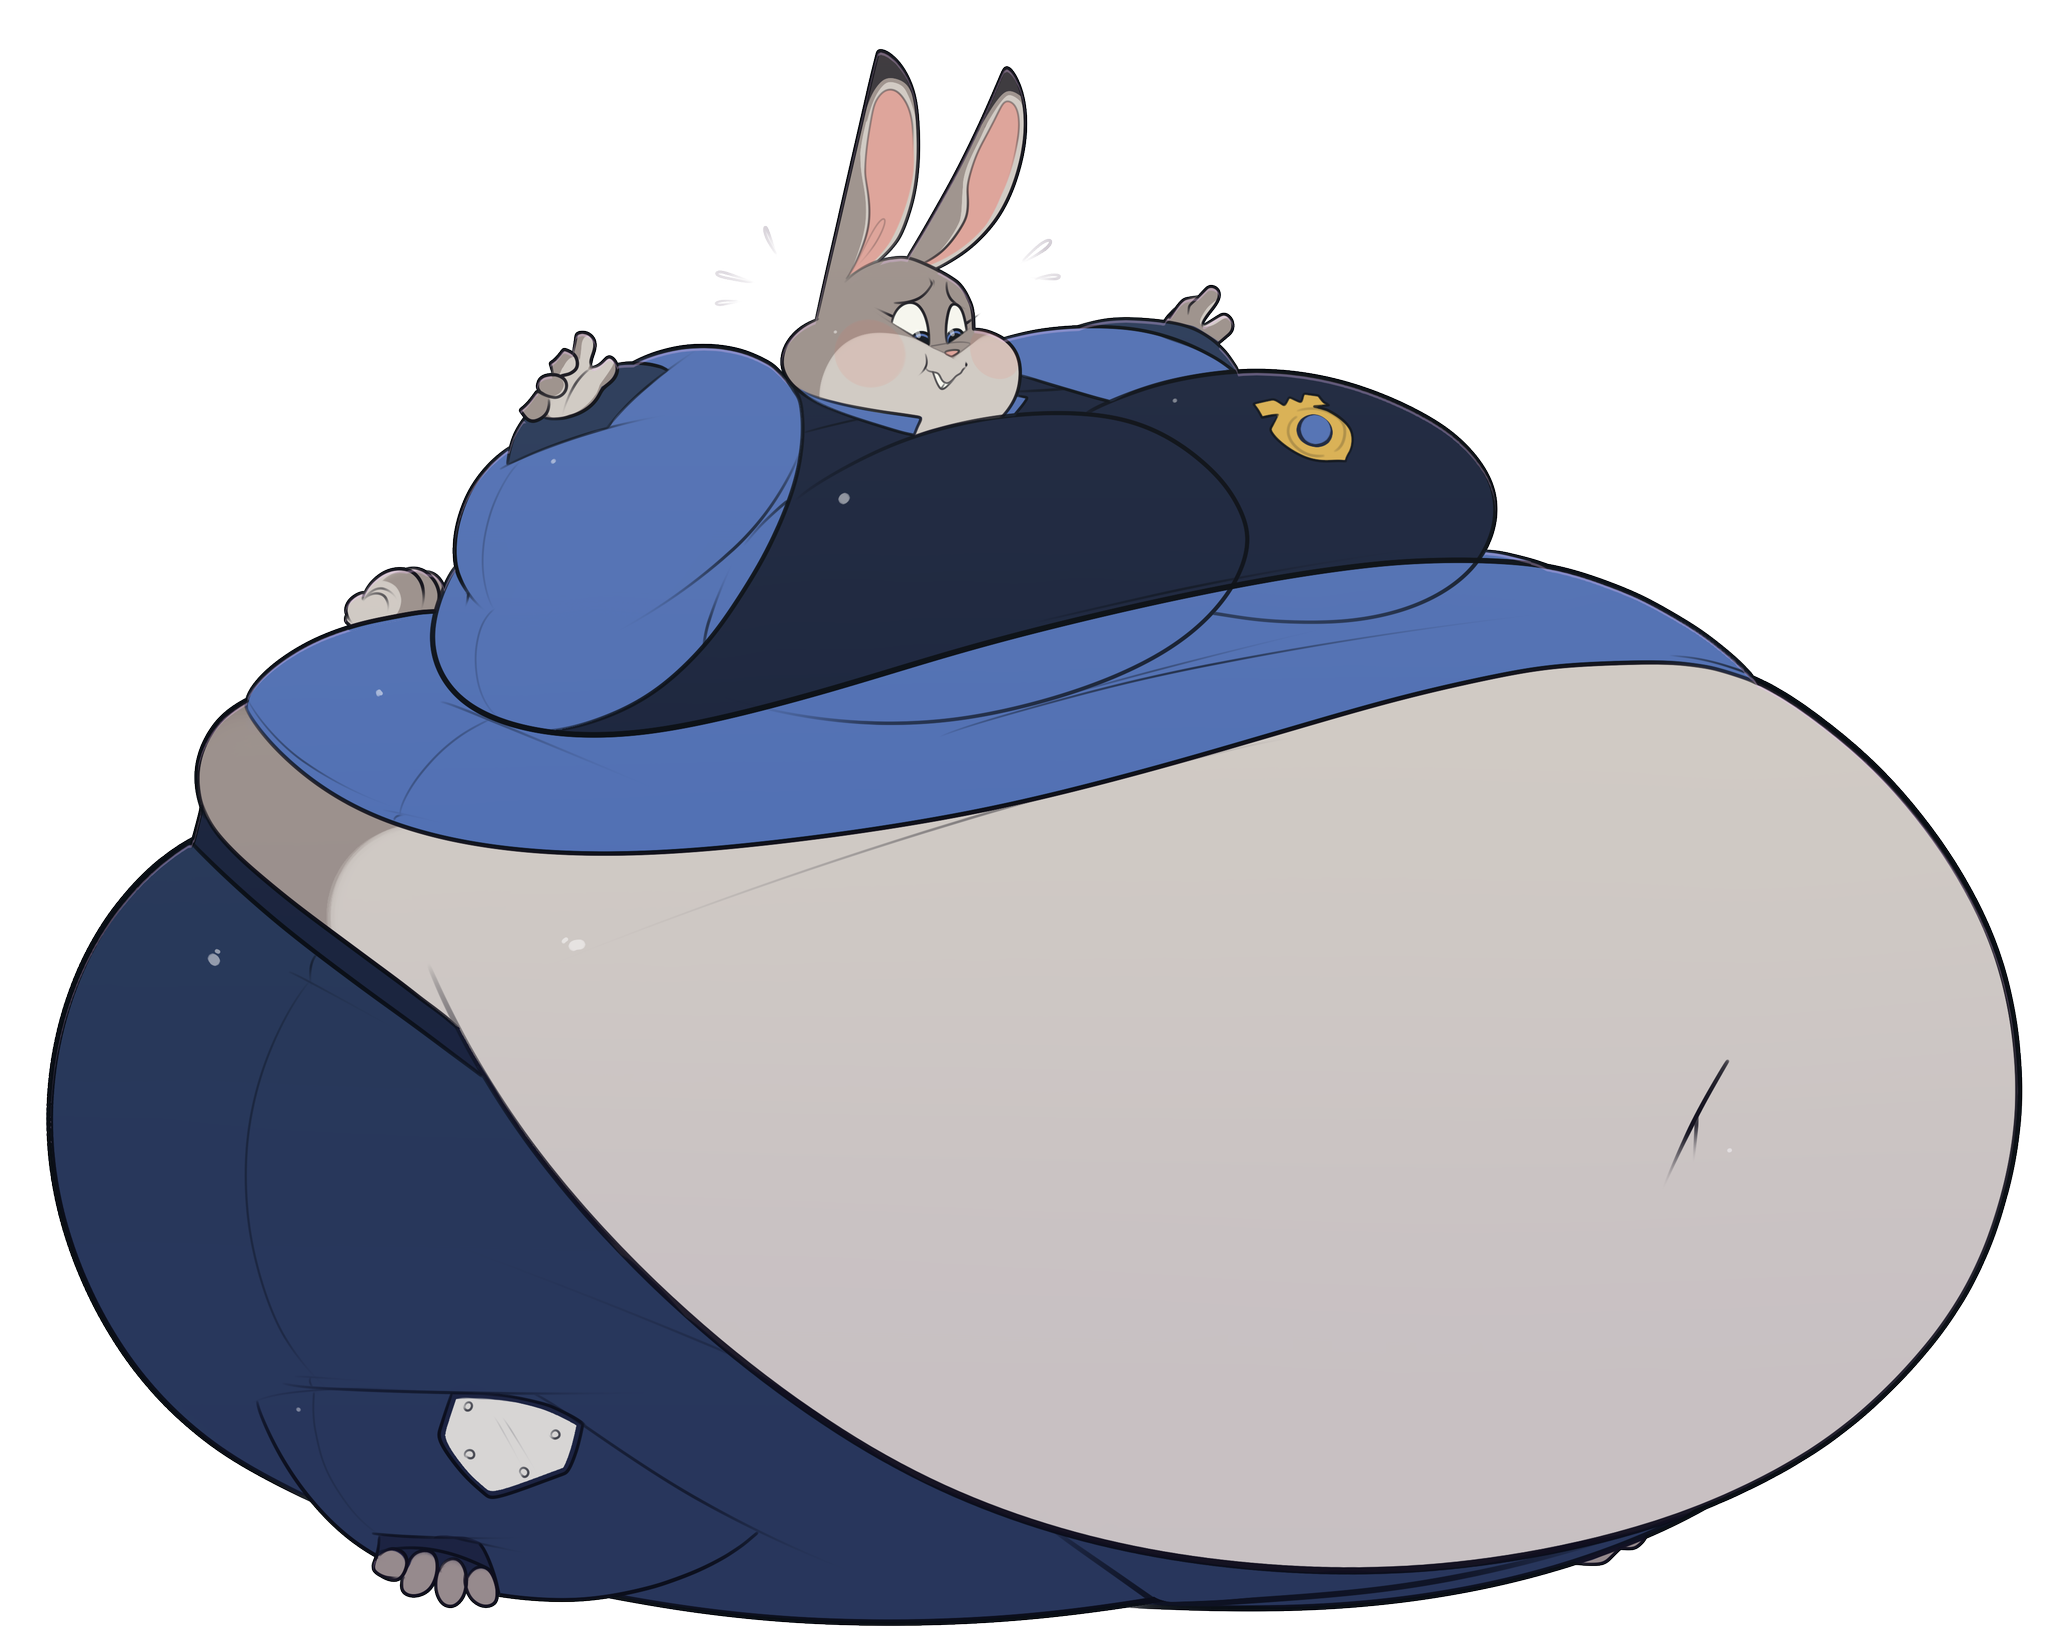 ridiculouscake on twitter some judy hopps inflation